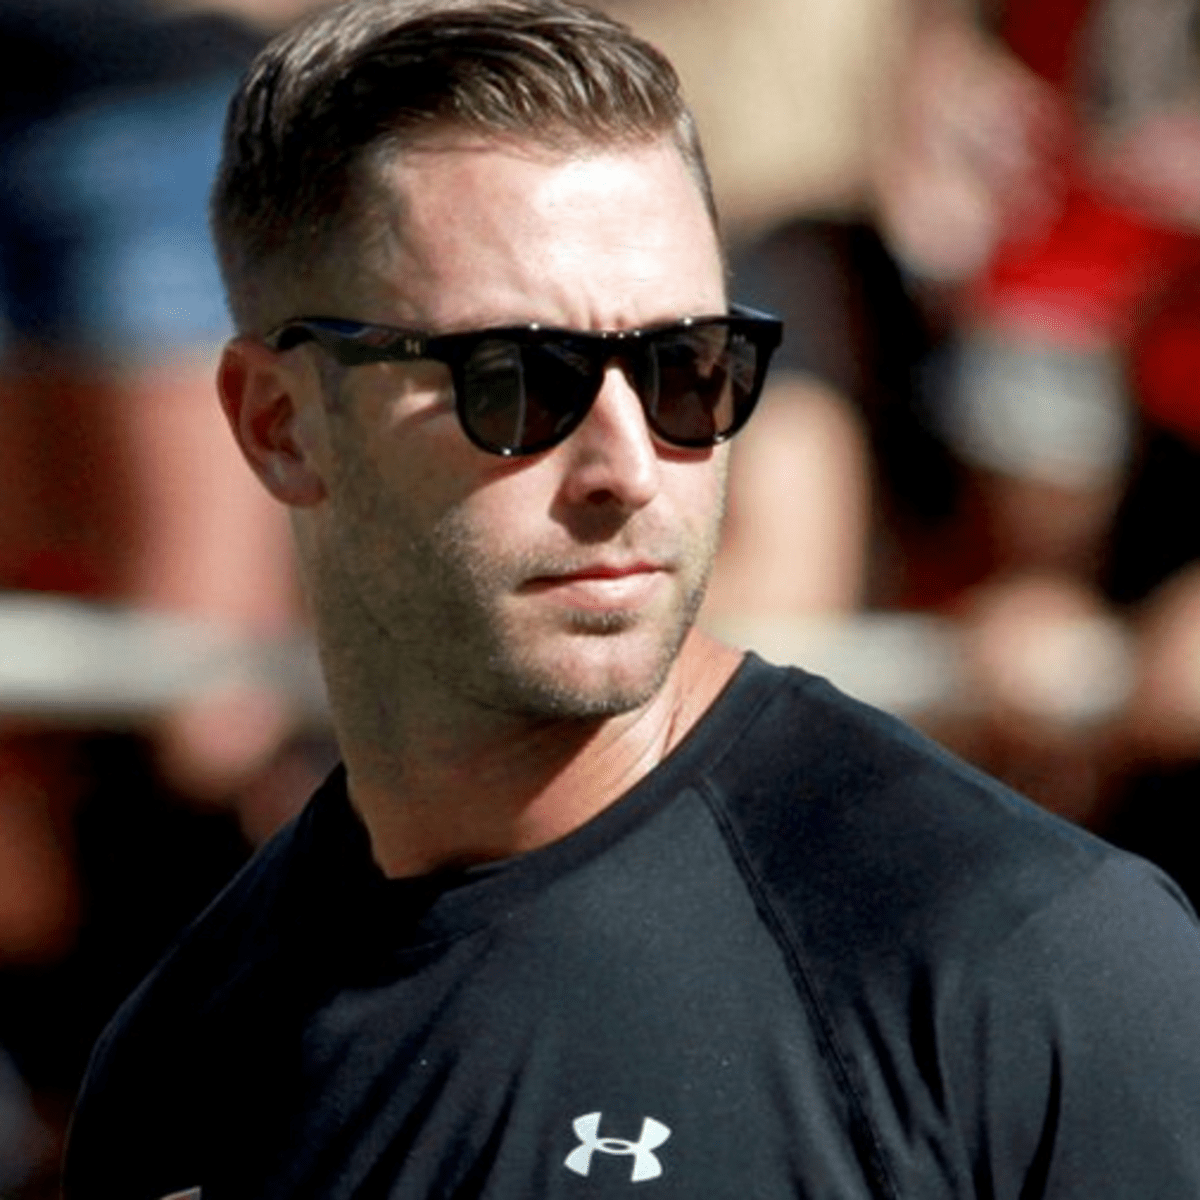 Houston, hottest college football coach in Texas, August 2015, Kliff Kingsbury